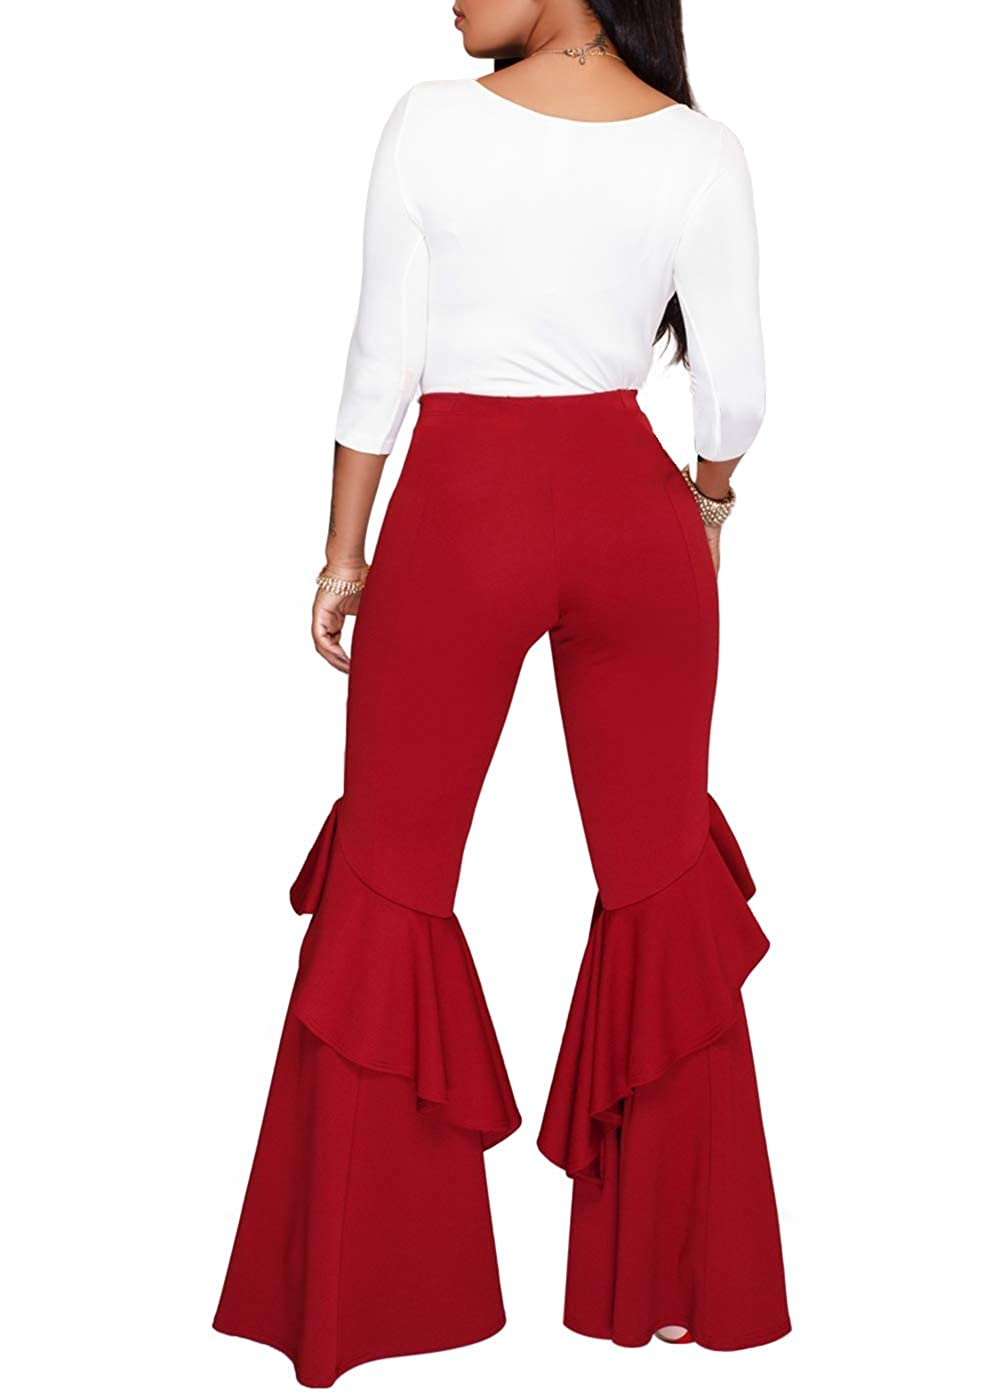 6f5020969f Feditch Women's Eye-catching High Waist Ruffle Bell Bottom Wide Leg Flare  Pants Trousers at Amazon Women's Clothing store: